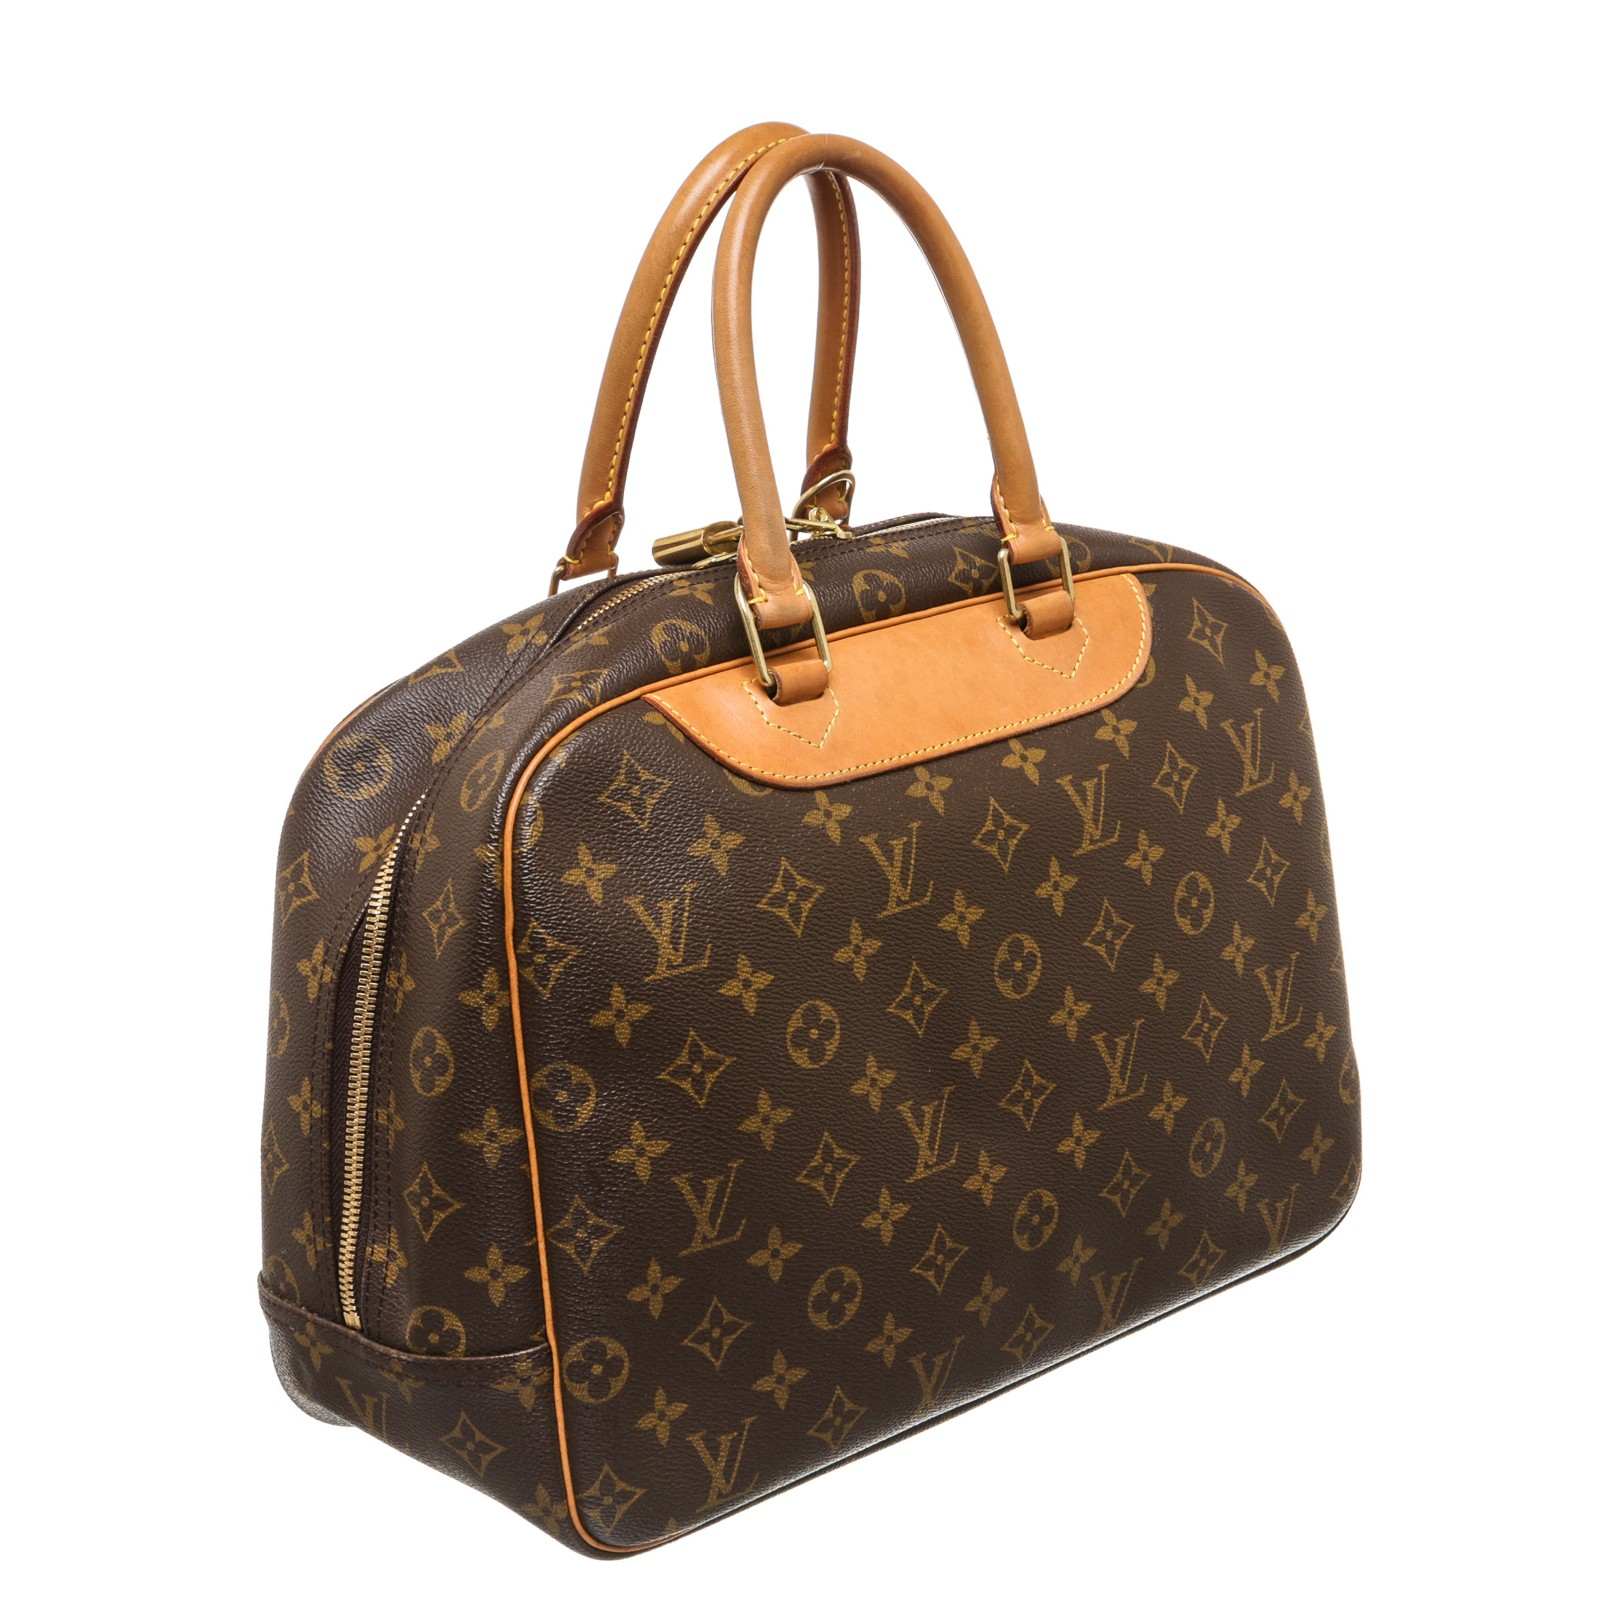 Shop For Louis Vuitton Monogram Canvas Leather Deauville Doctor Bag Shipped From Usa